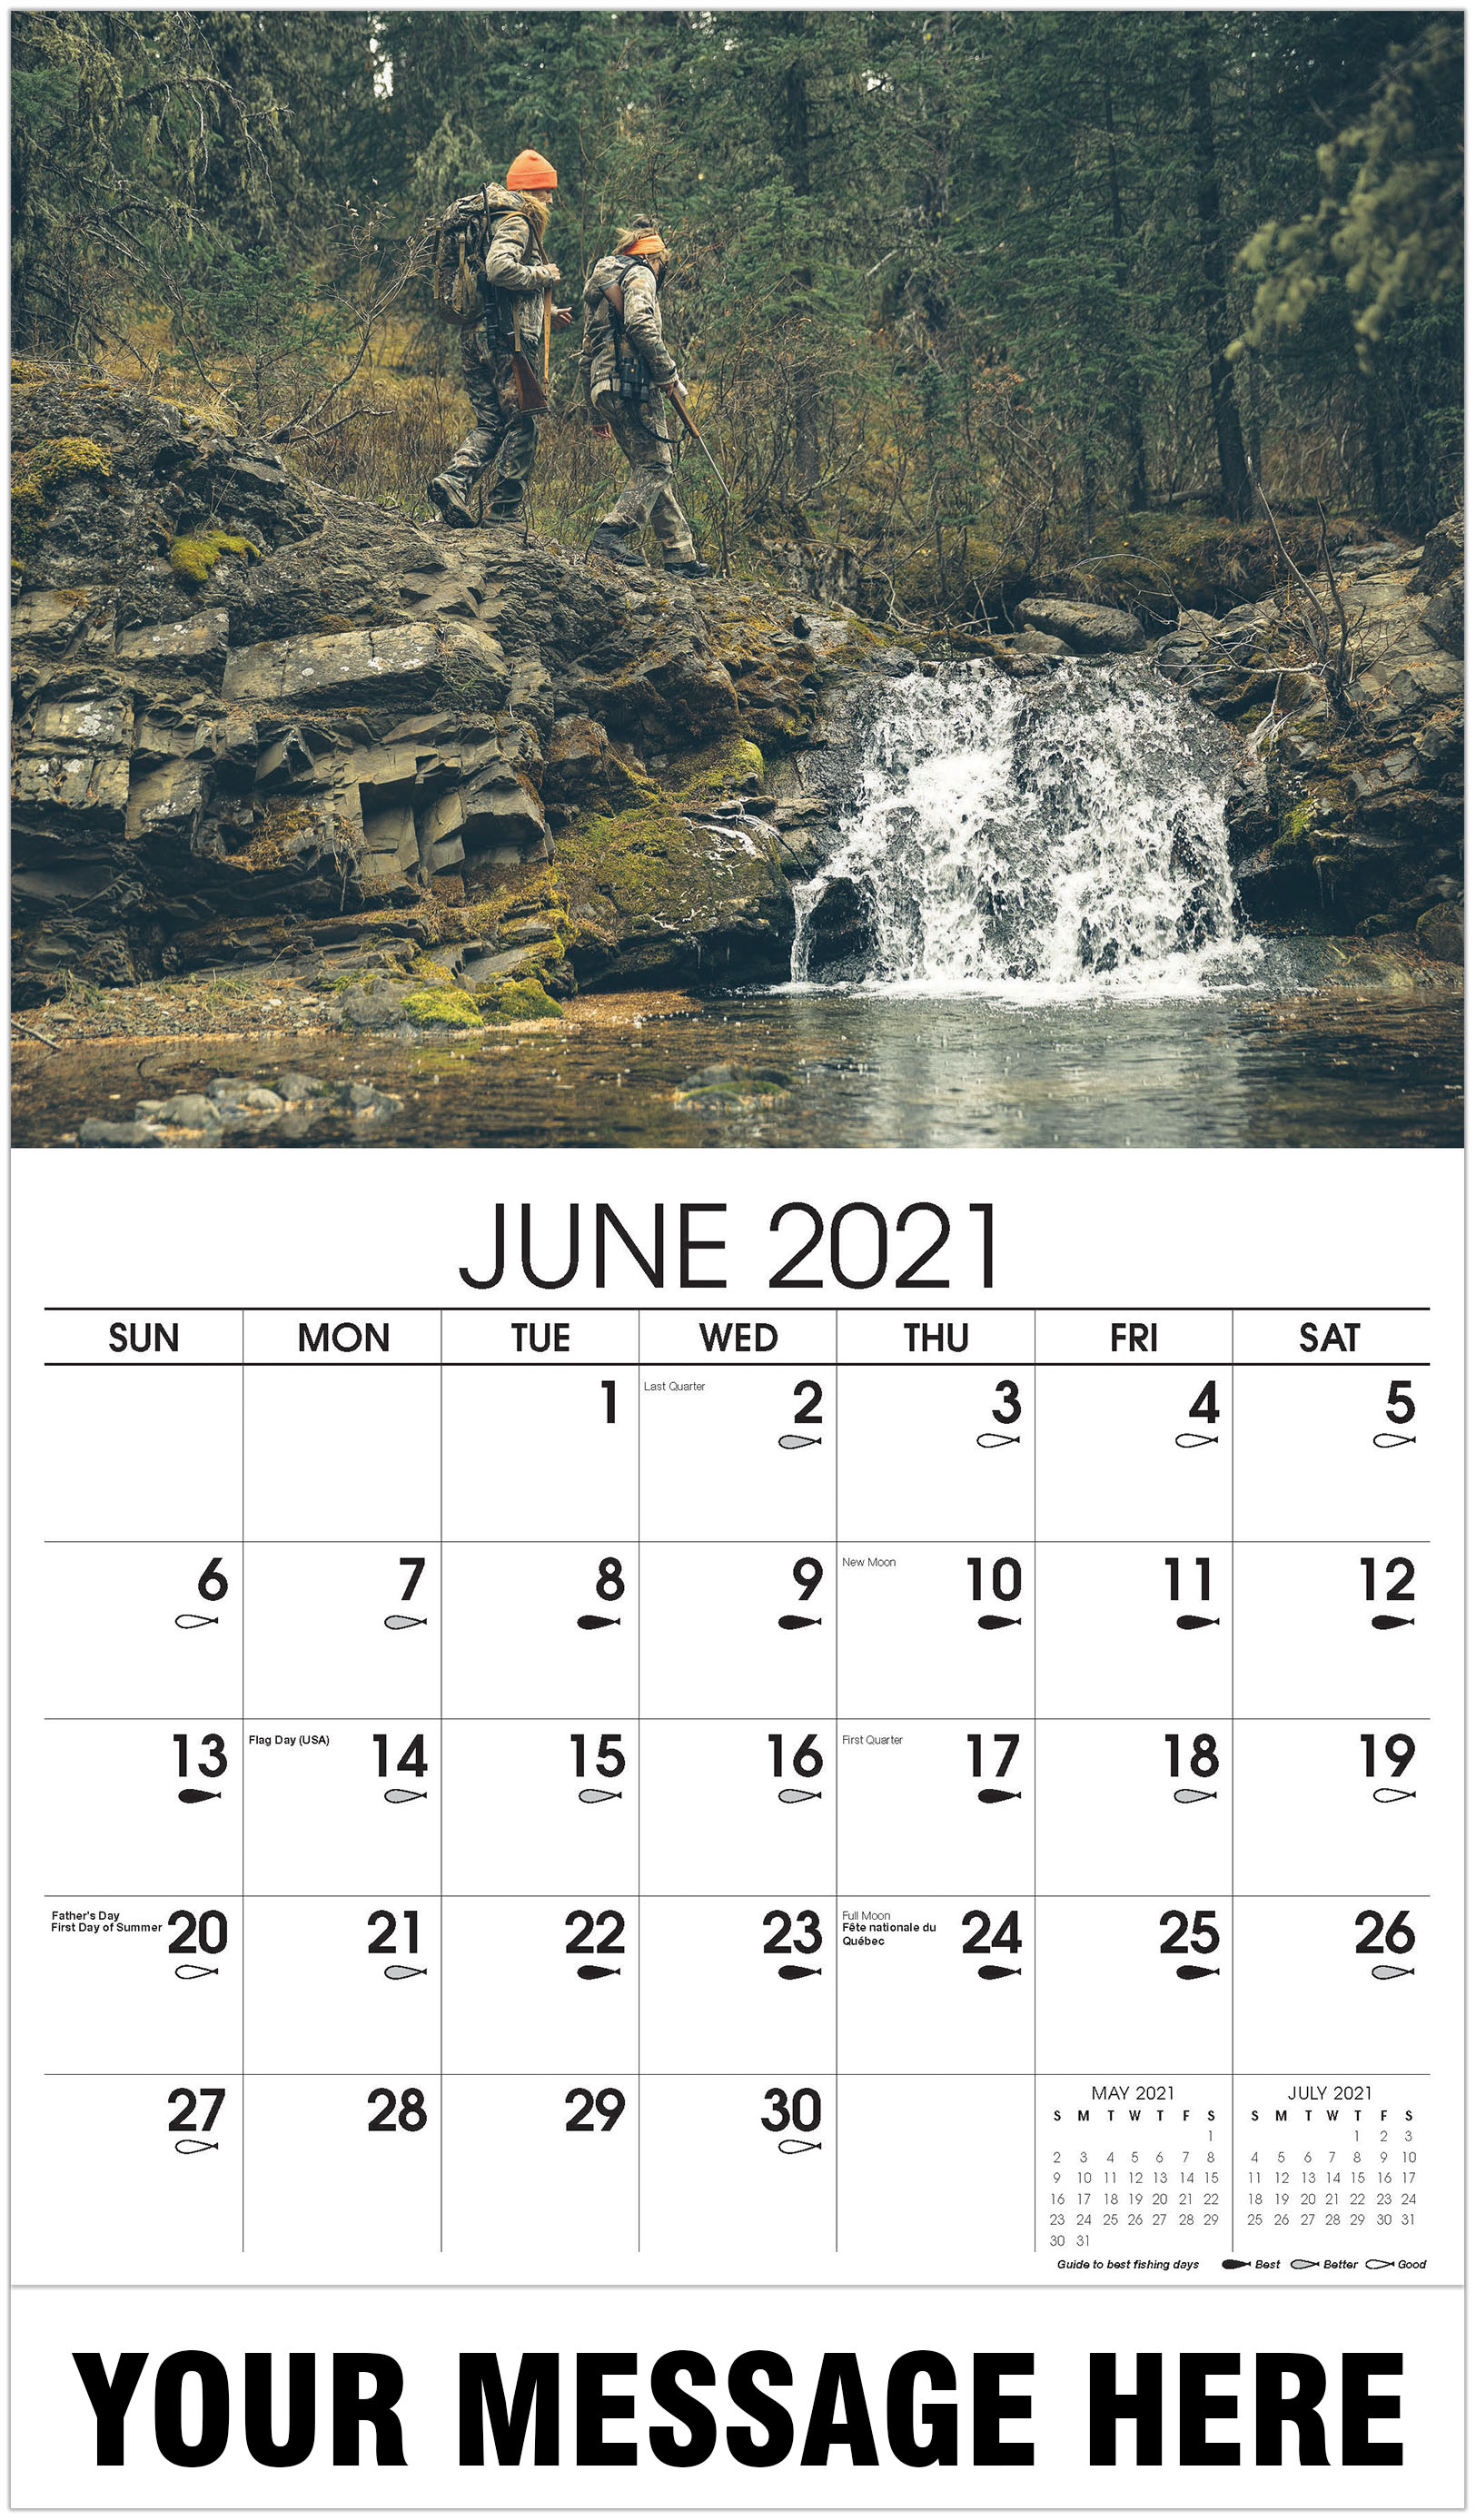 Mother and daughter hunters - June - Fishing & Hunting 2021 Promotional Calendar